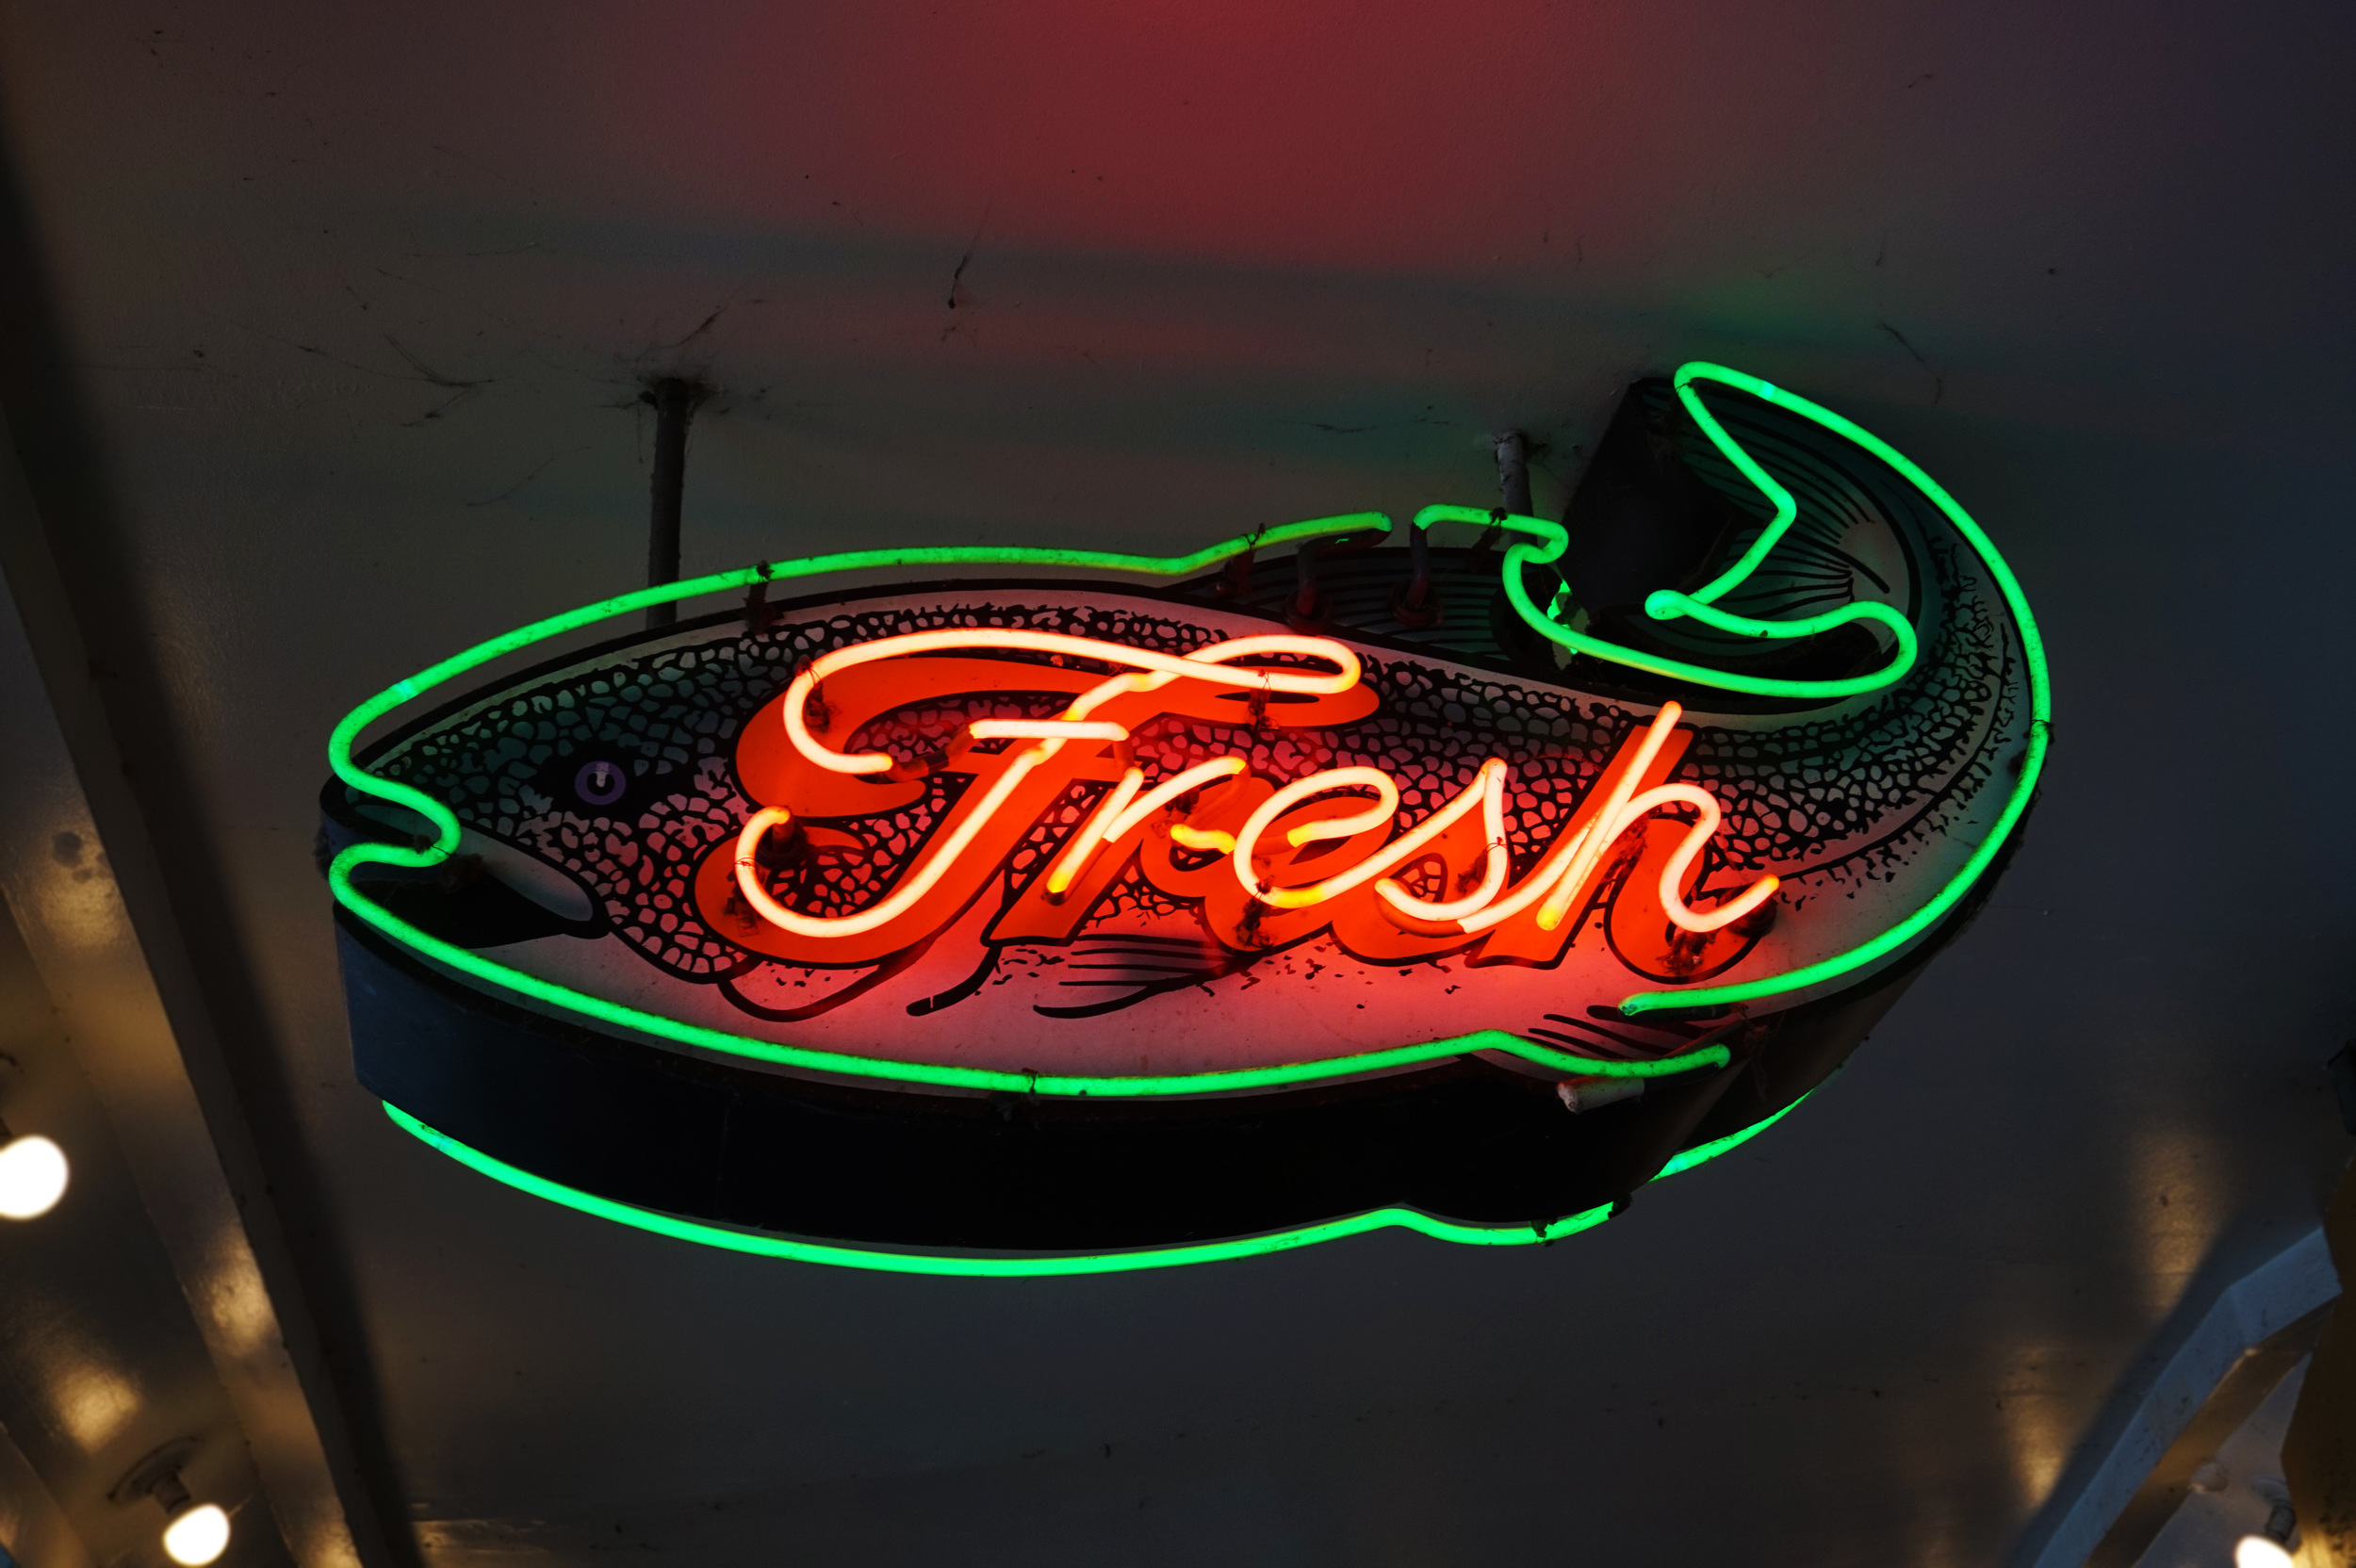 I loved the neon signs here; very retro and cute